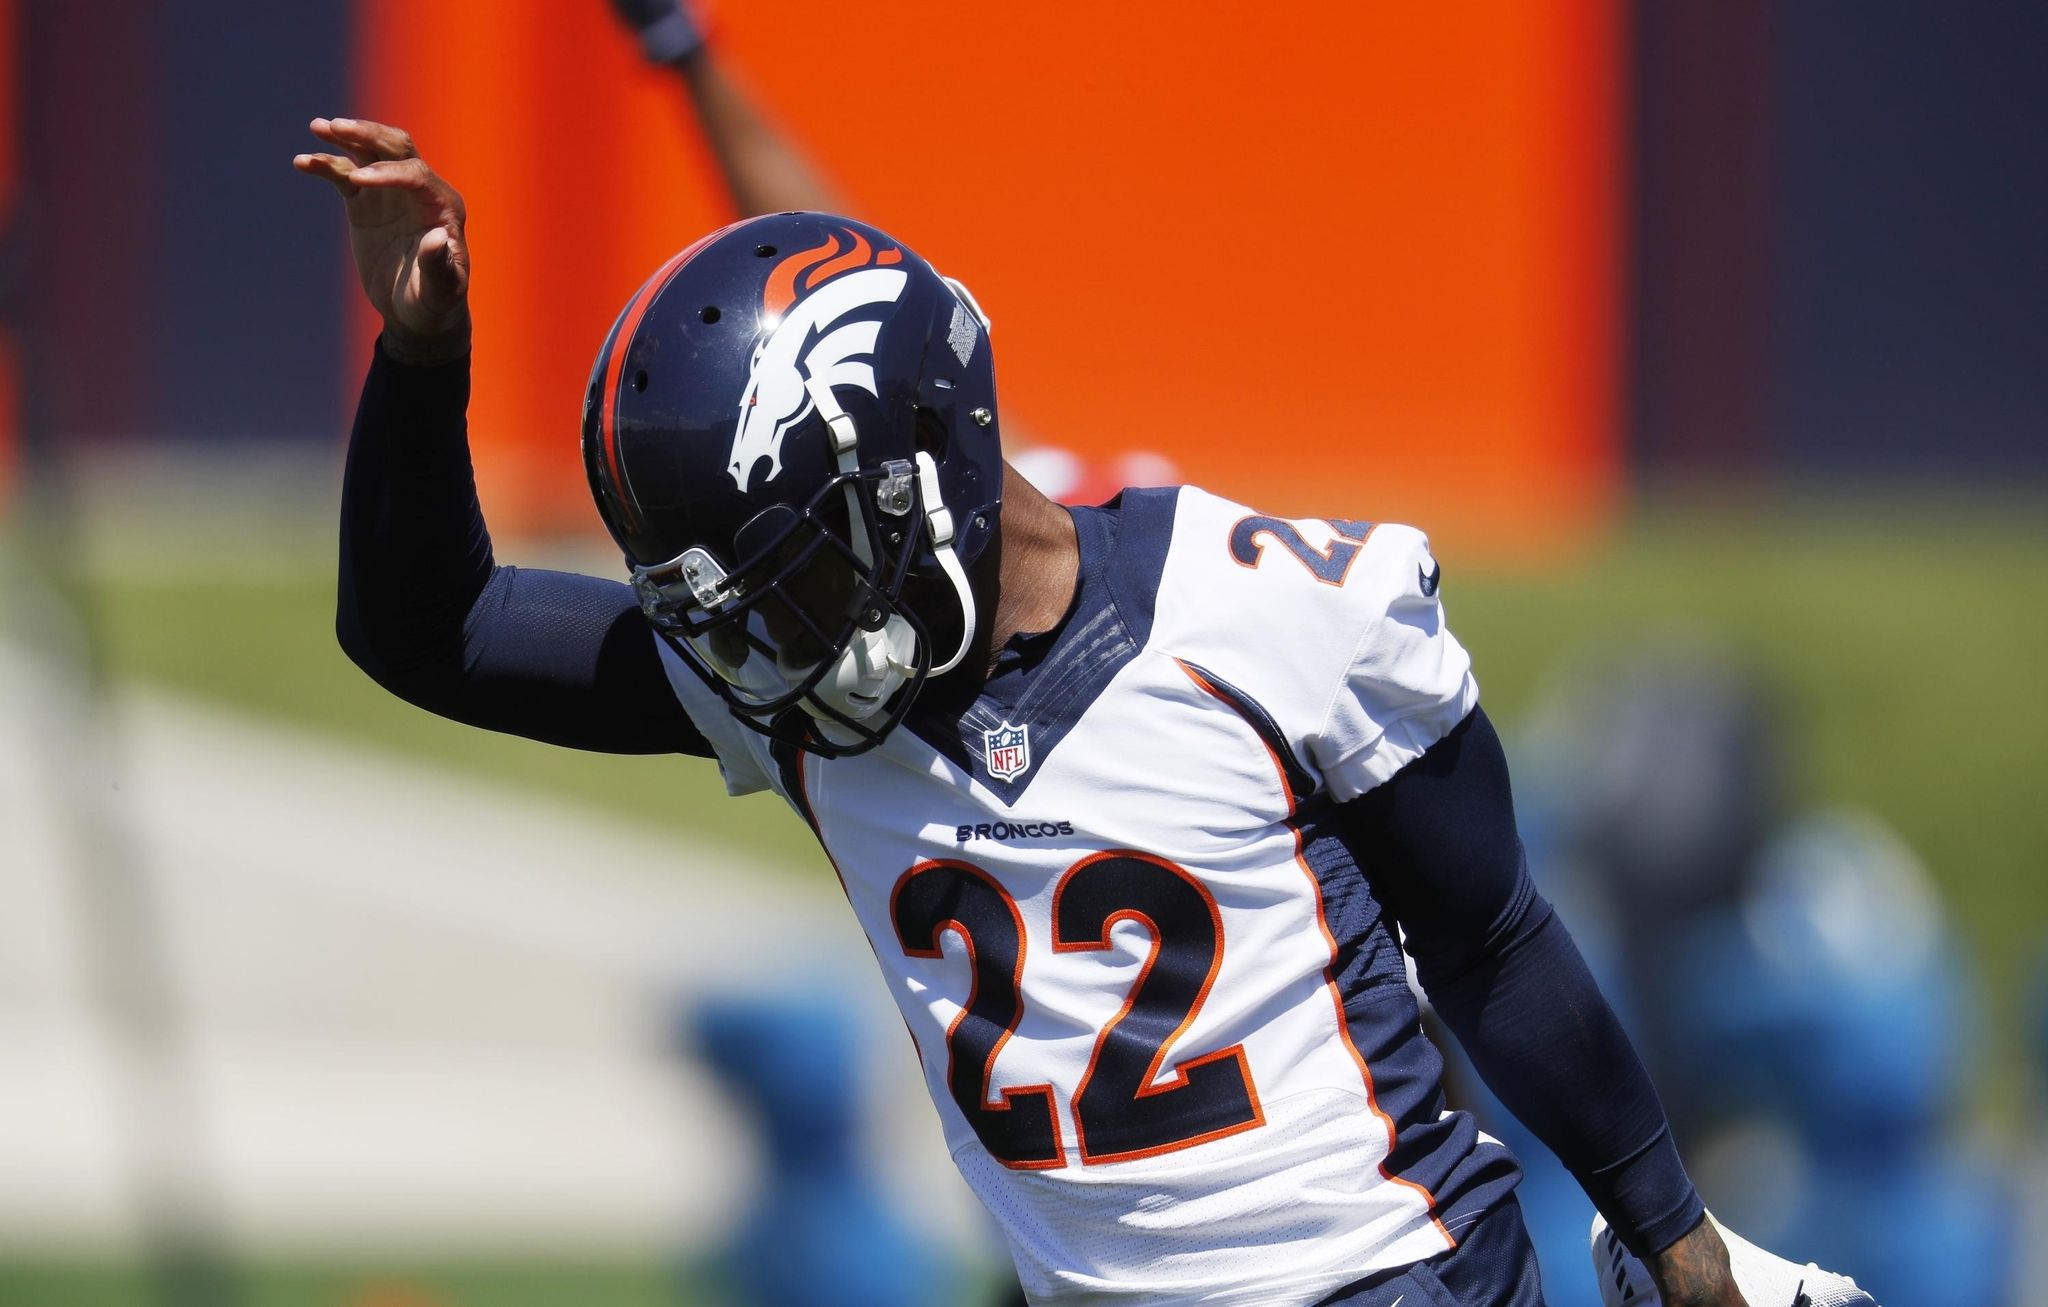 Broncos_camp_football_09410_s2048x1307